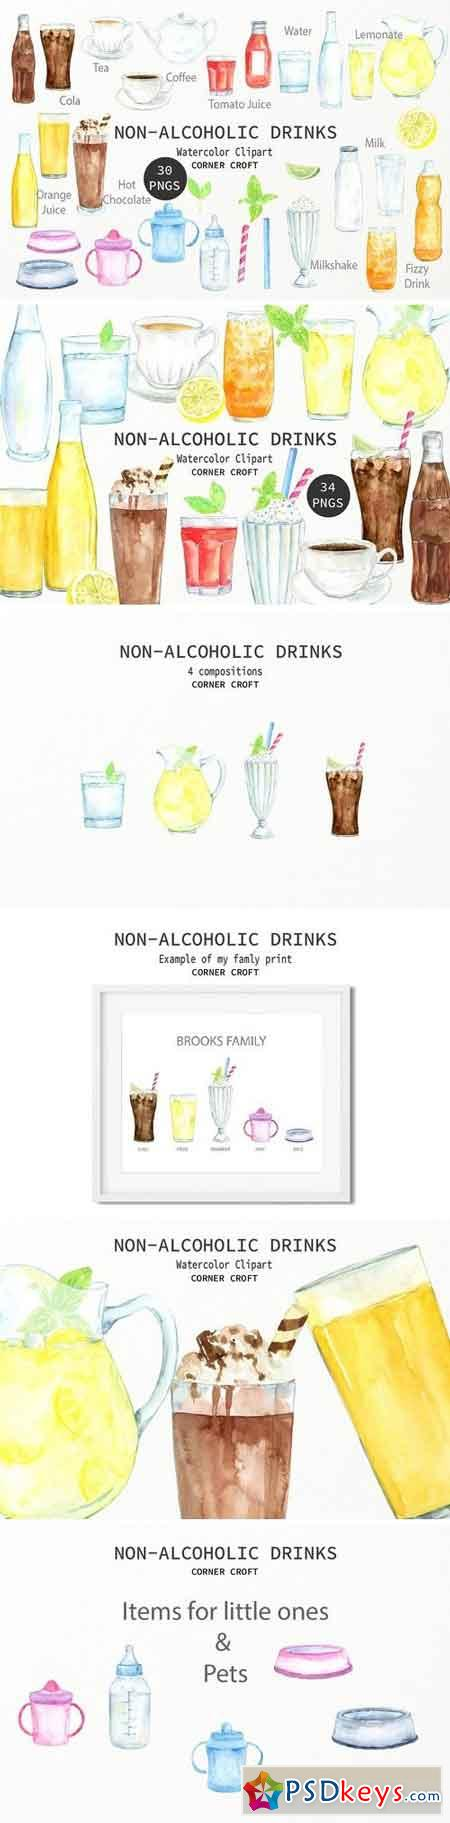 Watercolor non-alcoholic drinks 2263588